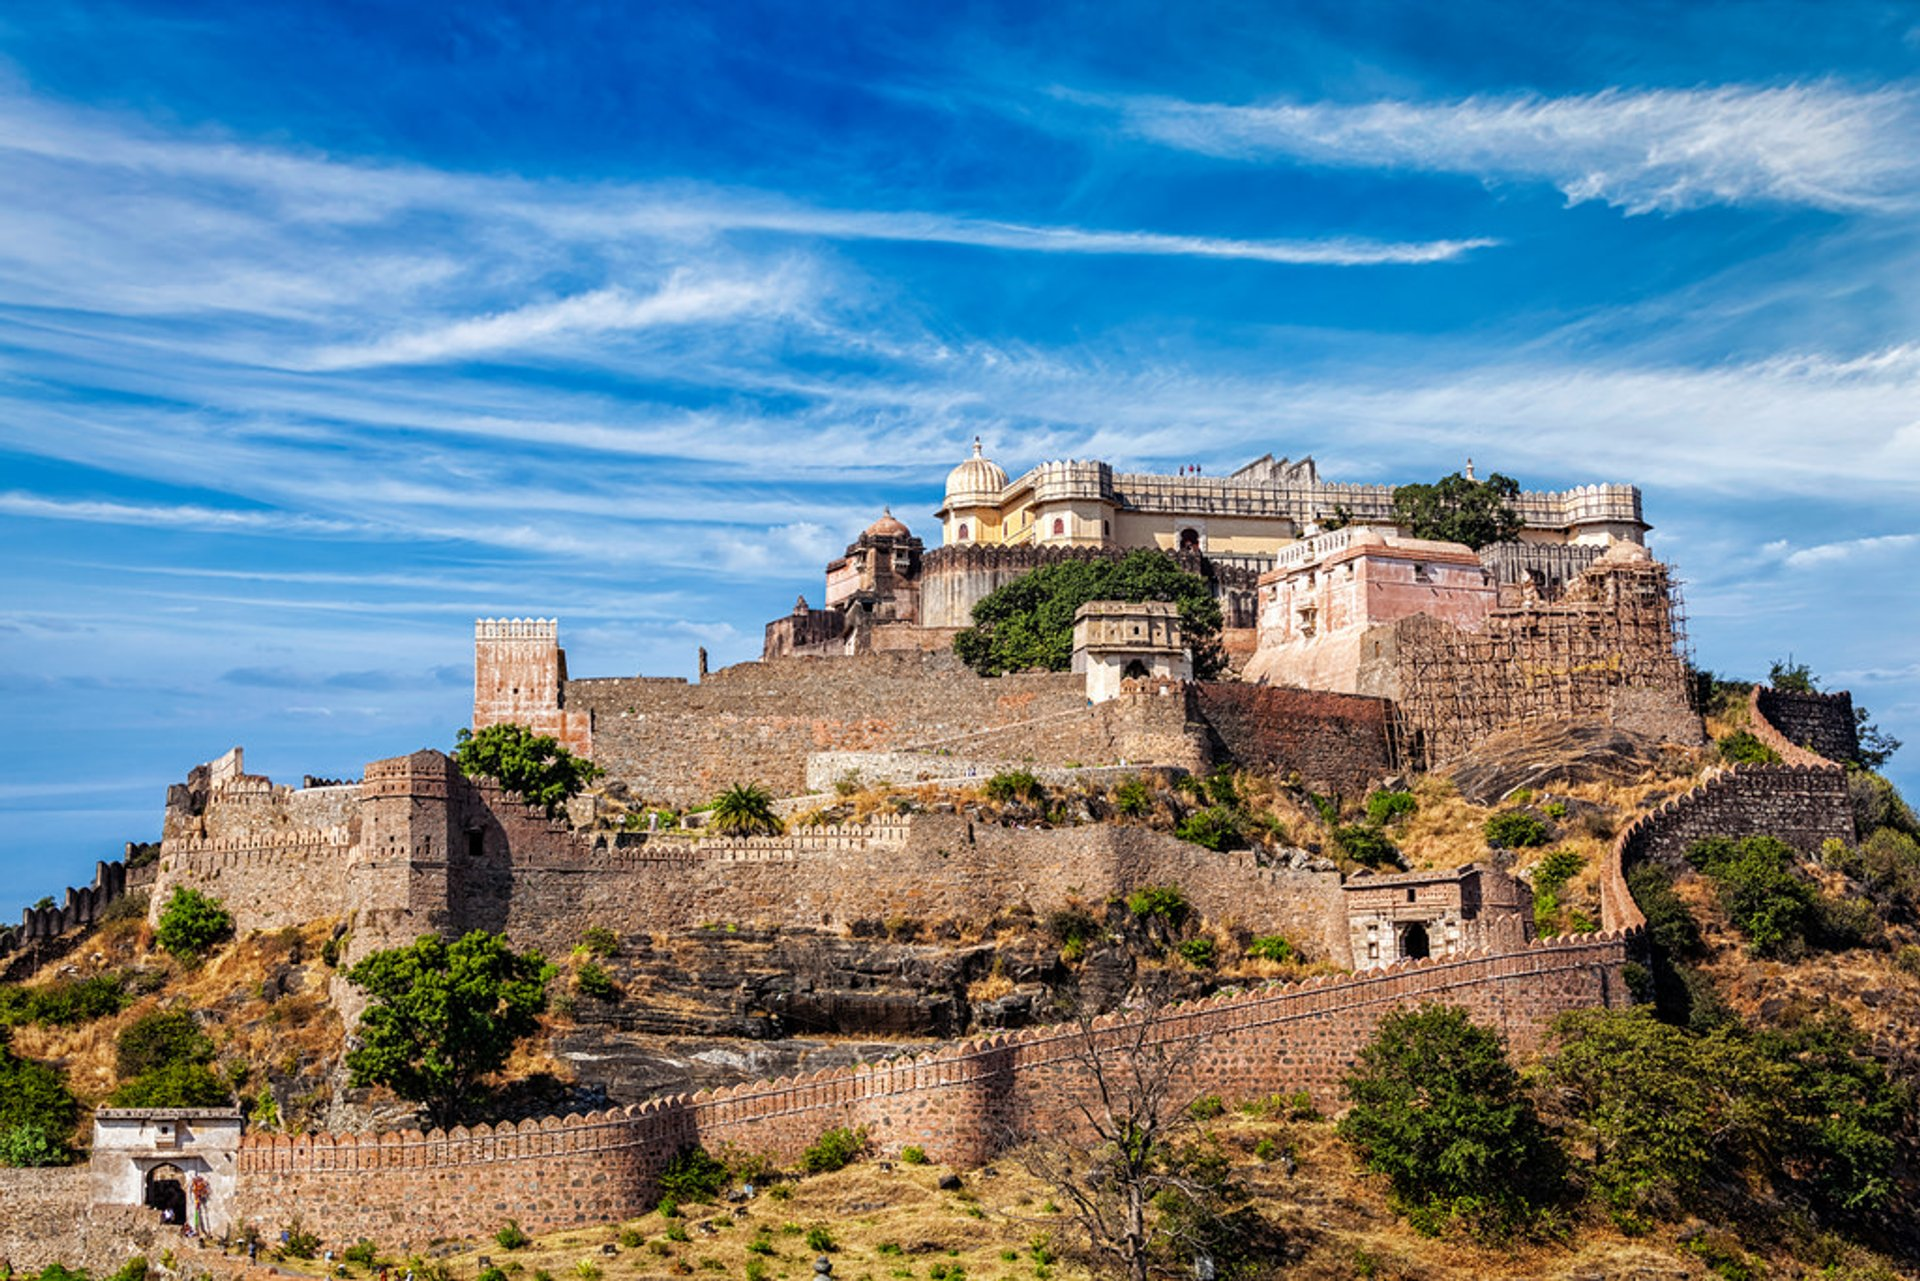 Kumbhalgarh Fort (The Great Wall of India) in India 2020 - Best Time